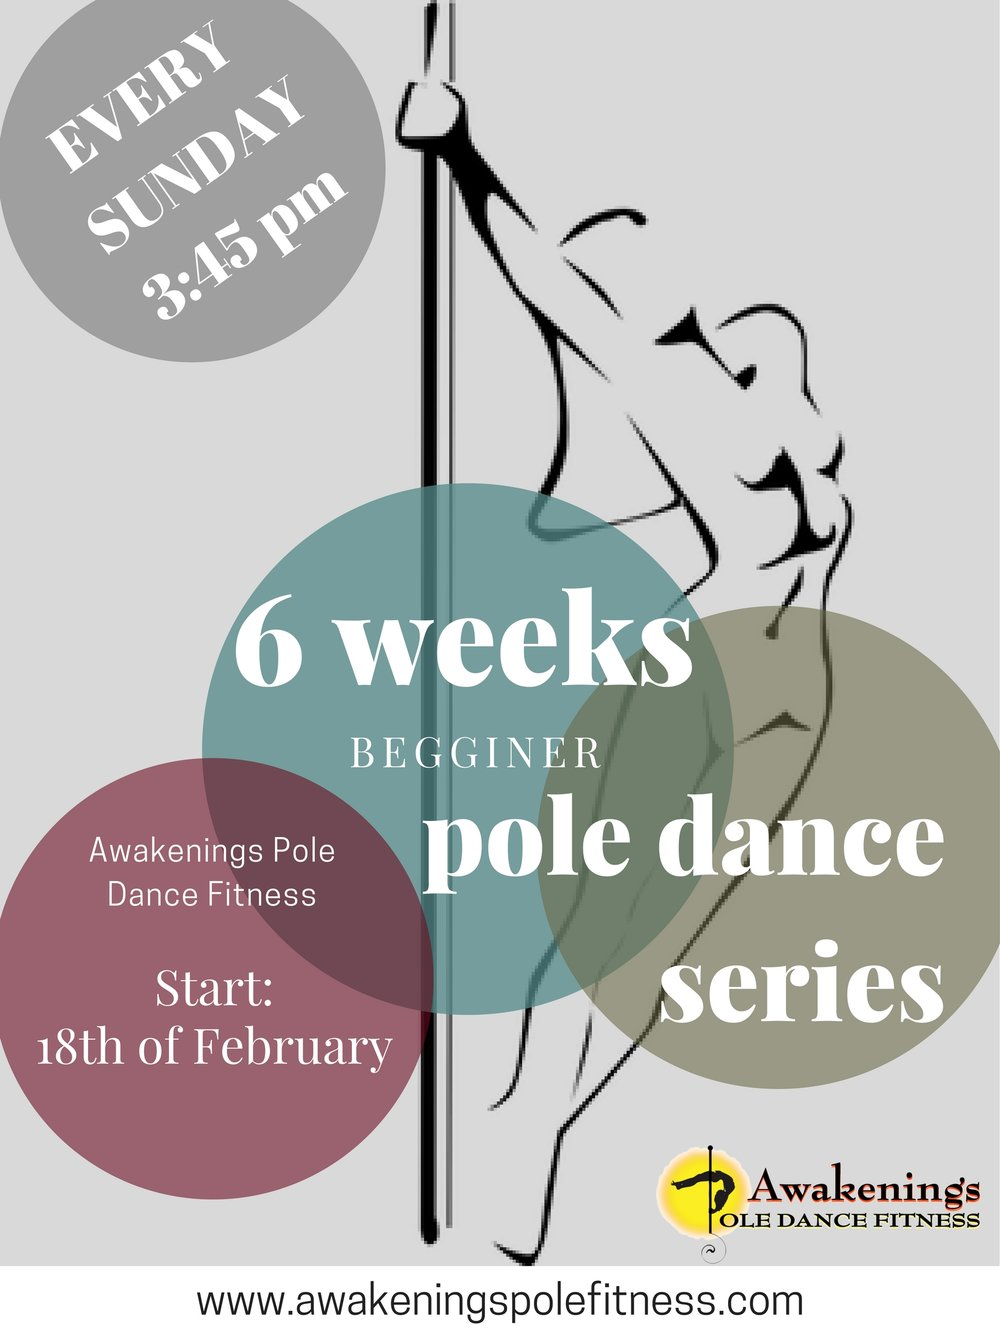 Poster created for the Awakenings Pole Dance Fitness, Philadelphia, PN.